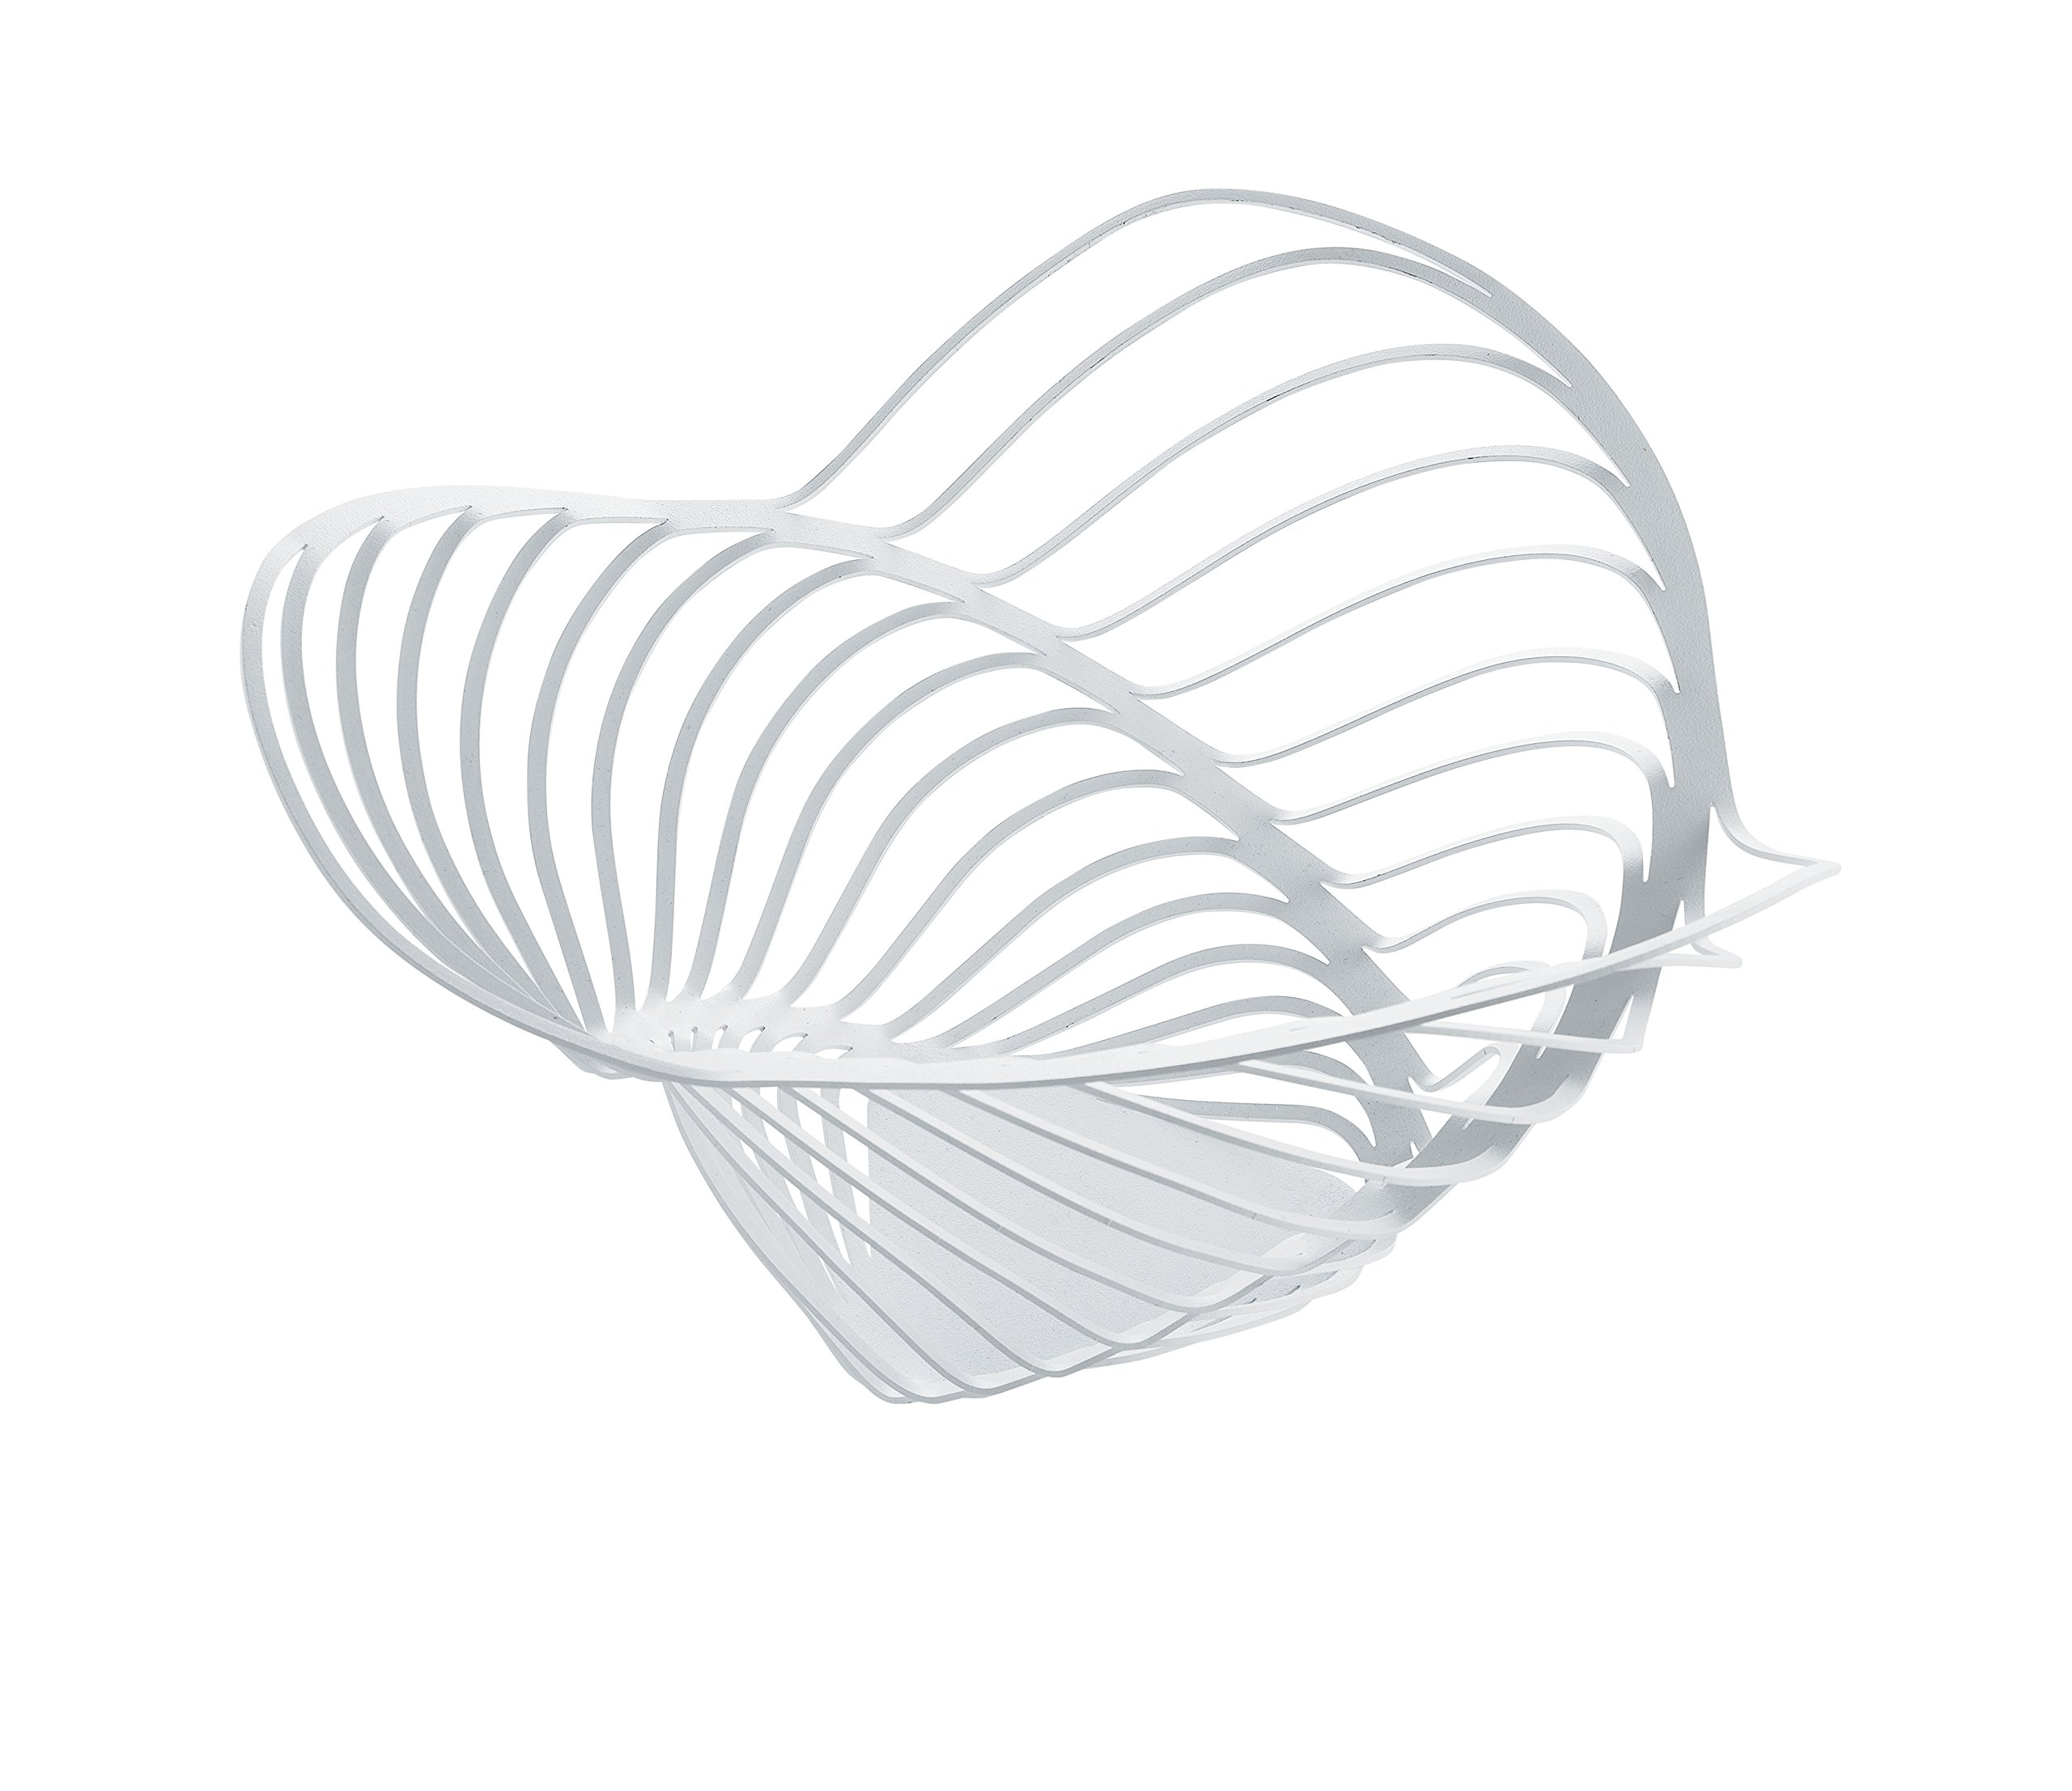 Alessi ACO04/16 W''Trinity'' Citrus Basket in Steel Colored with Epoxy Resin, White